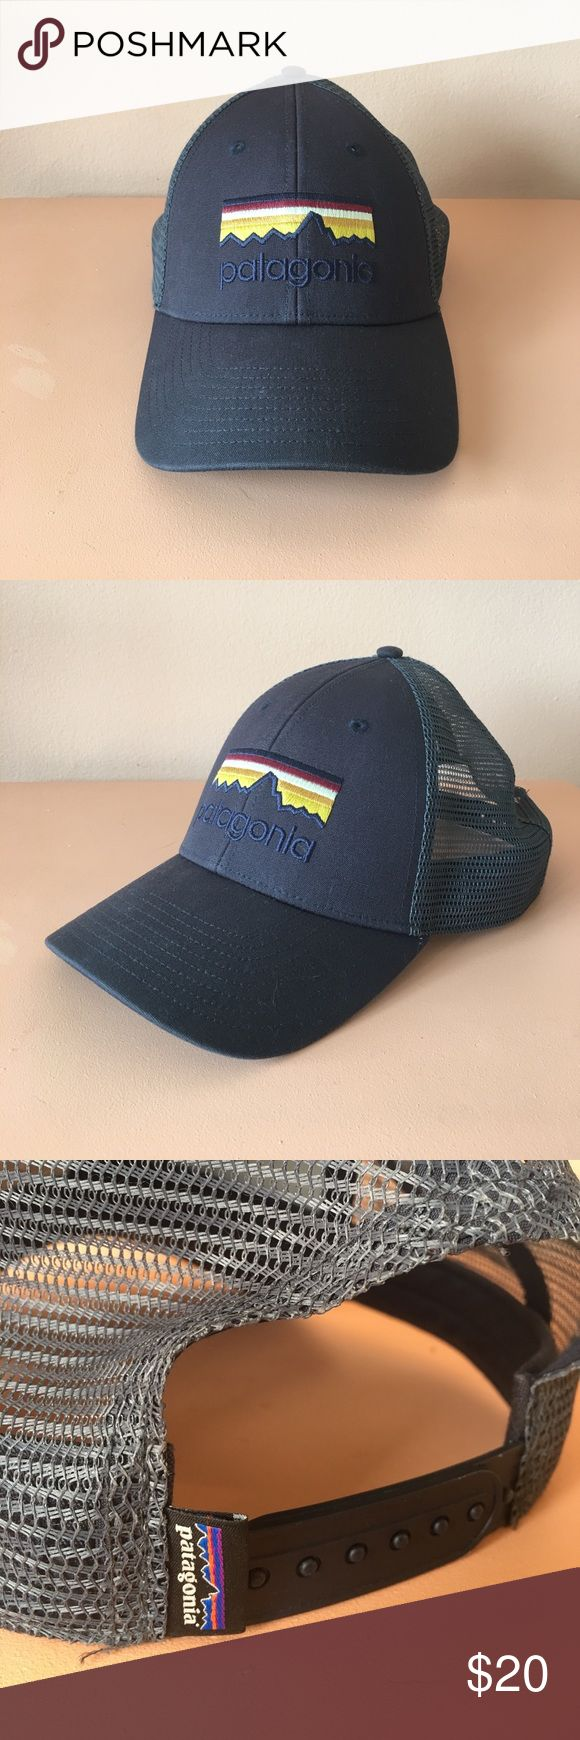 Patagonia mesh SnapBack hat cap Like new Patagonia SnapBack hat for sale. Work only couple times. Patagonia Accessories Hats